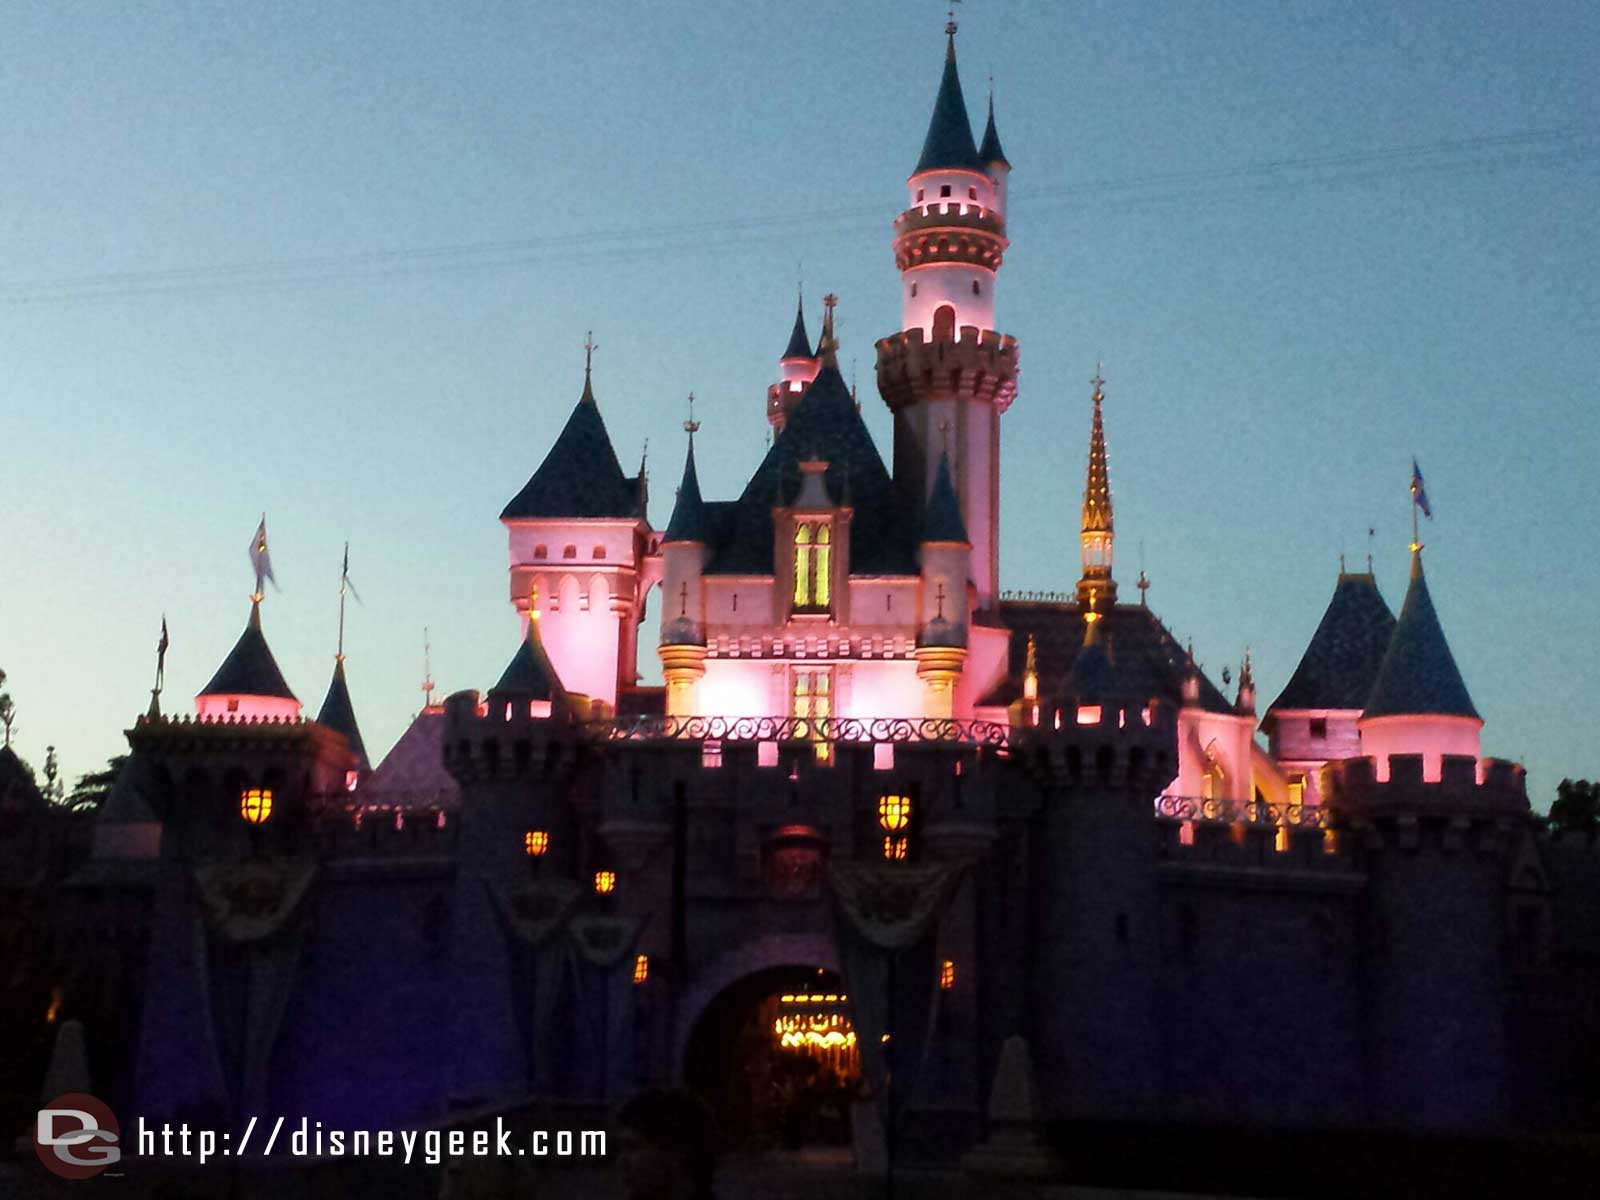 Sleeping Beauty Castle after sunset